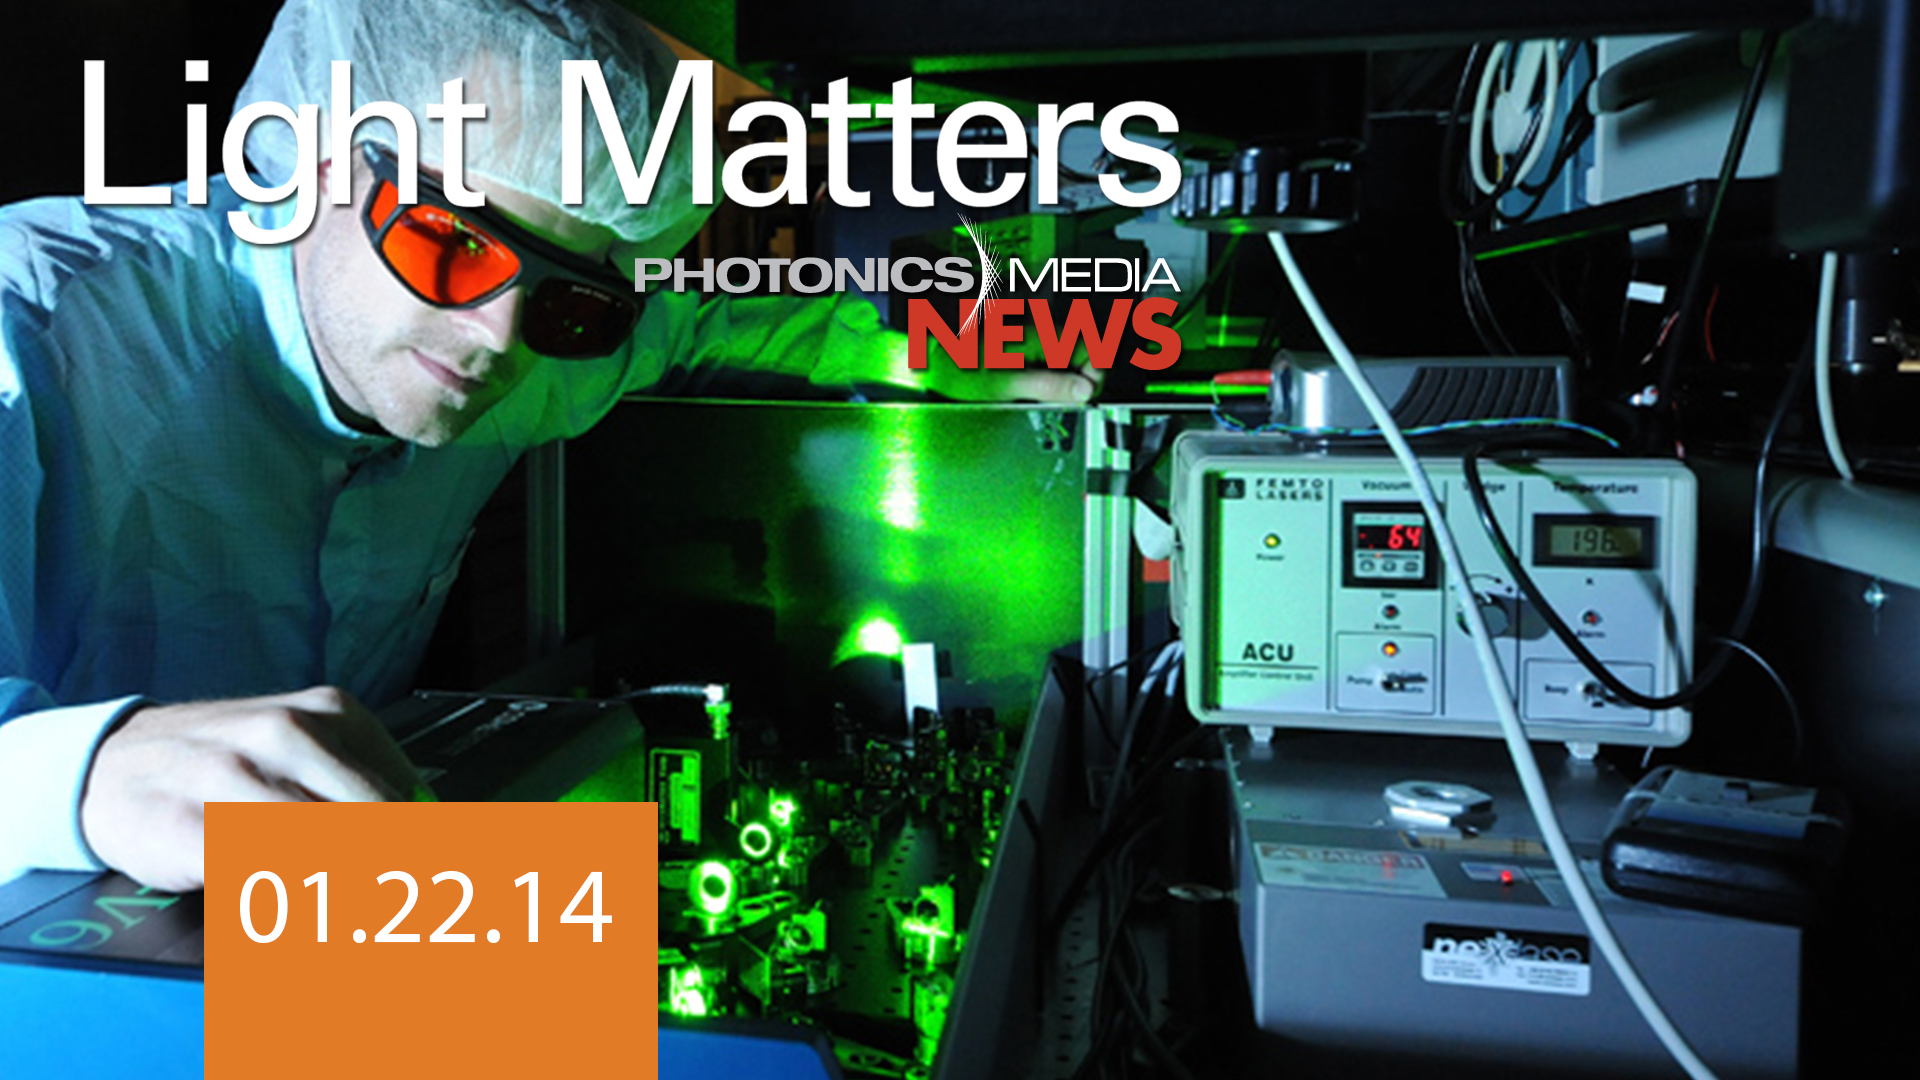 Waveform Control, Subsurface Probe & Harvesting Solar Energy - LIGHT MATTERS 01/22/14